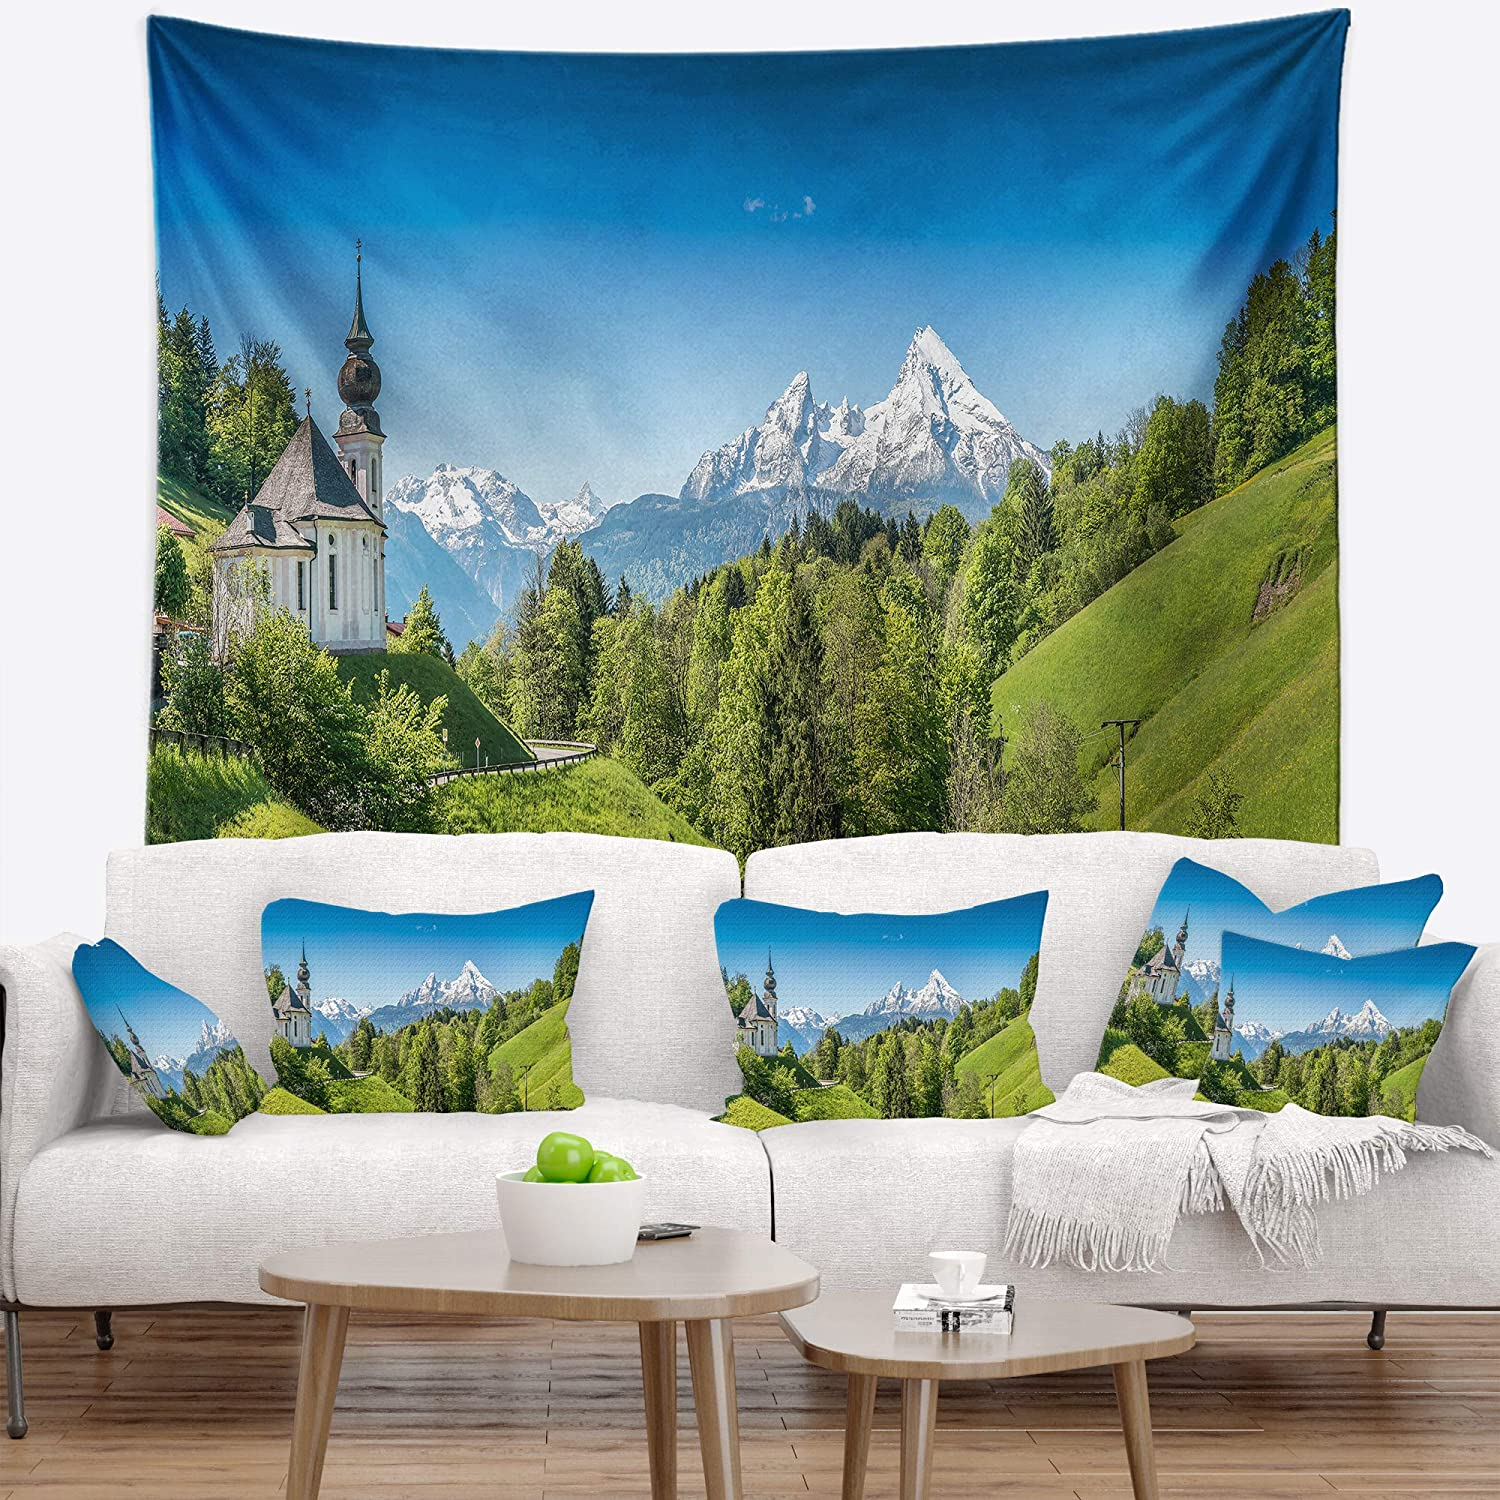 Designart Tap15334 39 32 Green Mountain View Of Bavarian Alps Landscape Blanket Décor Art For Home And Office Wall Tapestry Medium 39 In Created On Lightweight Polyester Fabric X 32 In Home Kitchen